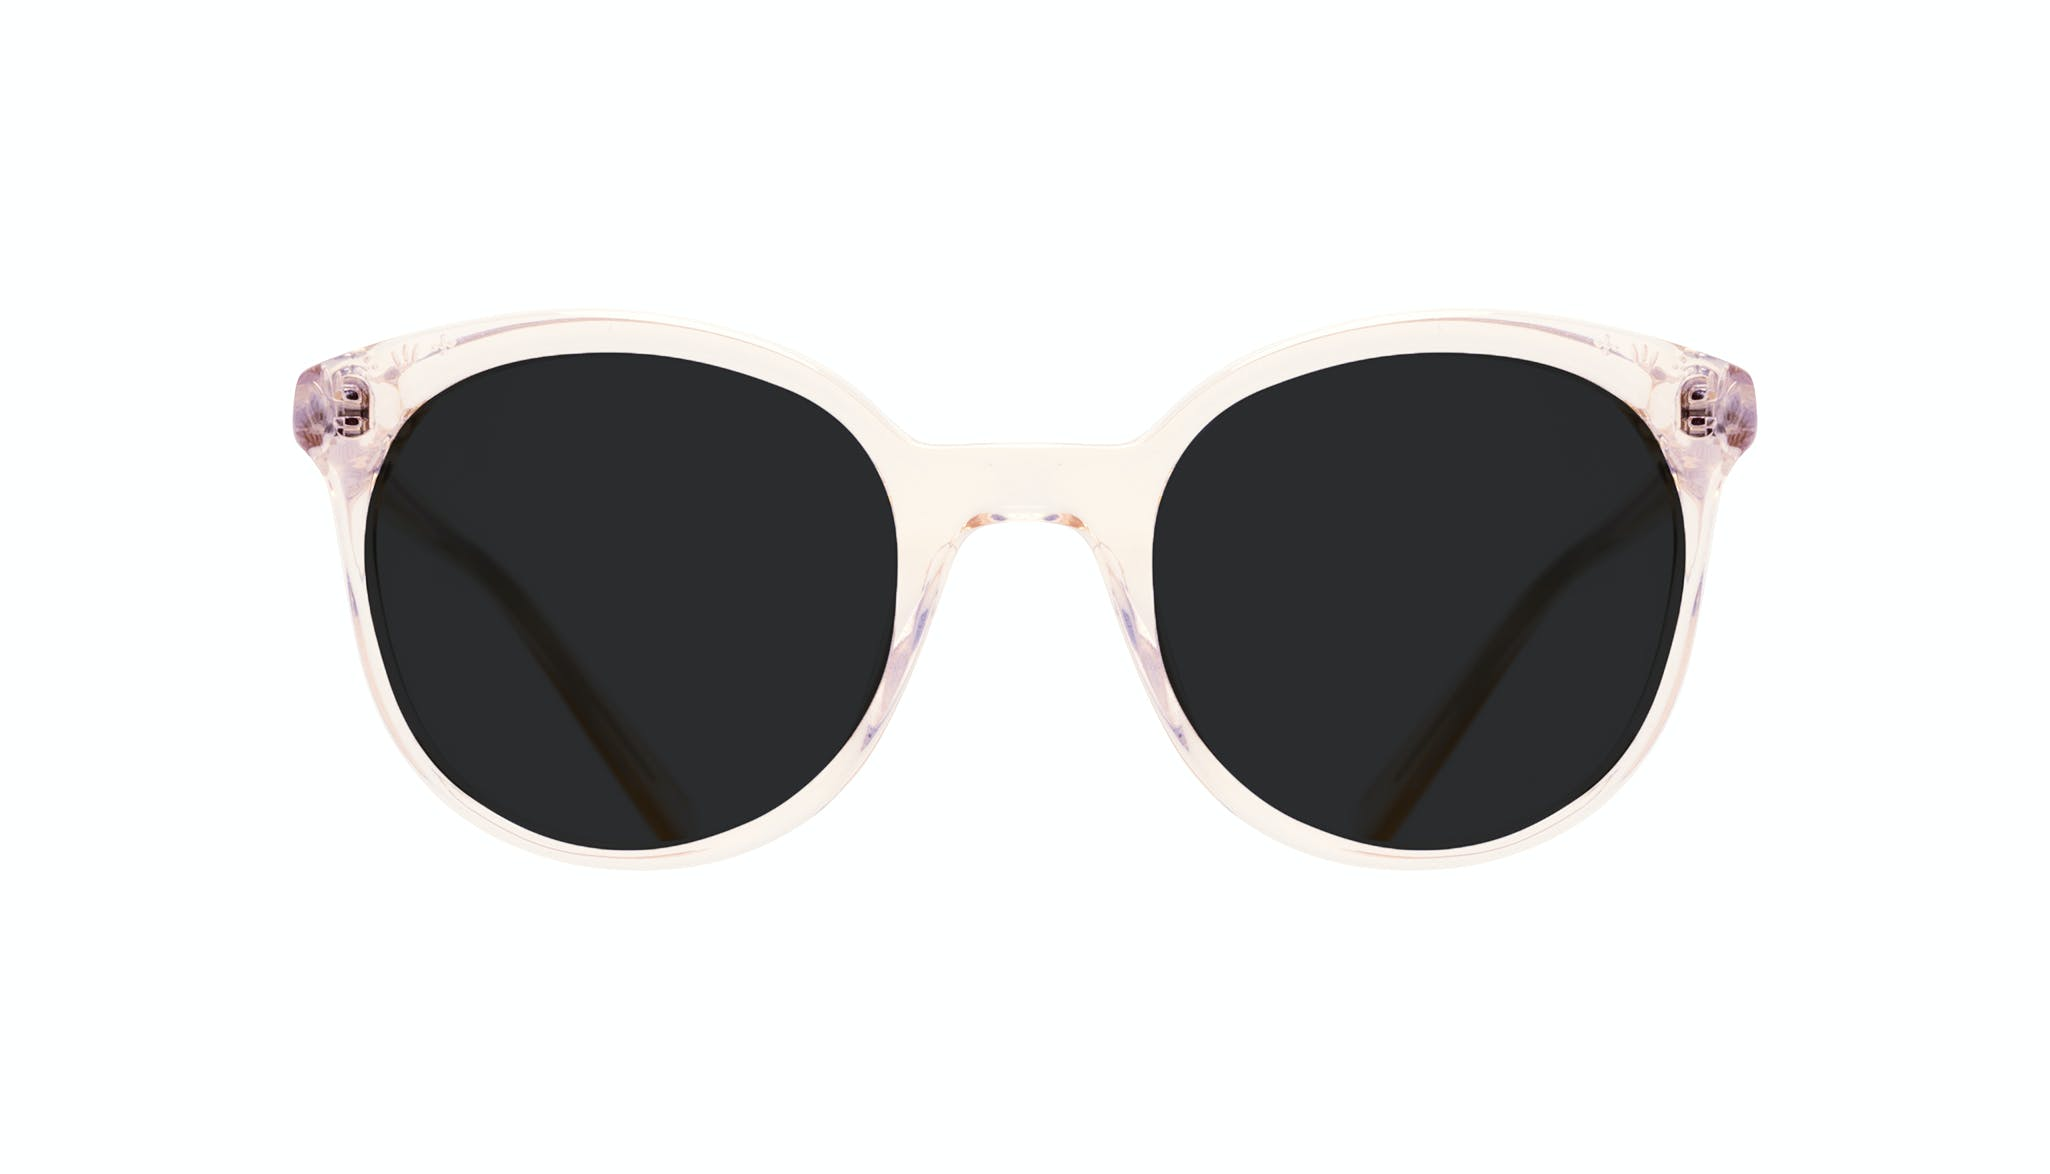 Affordable Fashion Glasses Round Sunglasses Women Must Blond